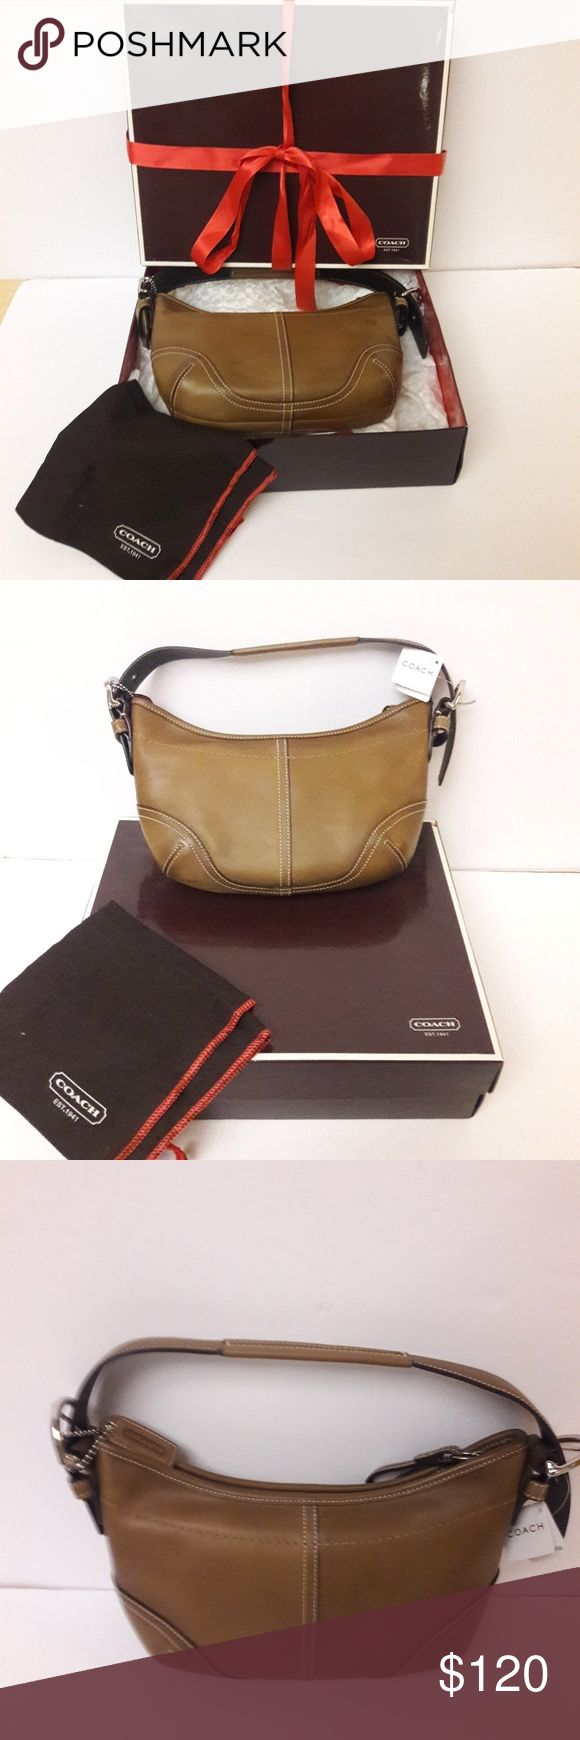 NWT Tan leather Coach hobo purse New with tags, gorgeous tan leather Coach hobo bag. Mint condition. Comes with original box and dustbag. Coach Bags Hobos